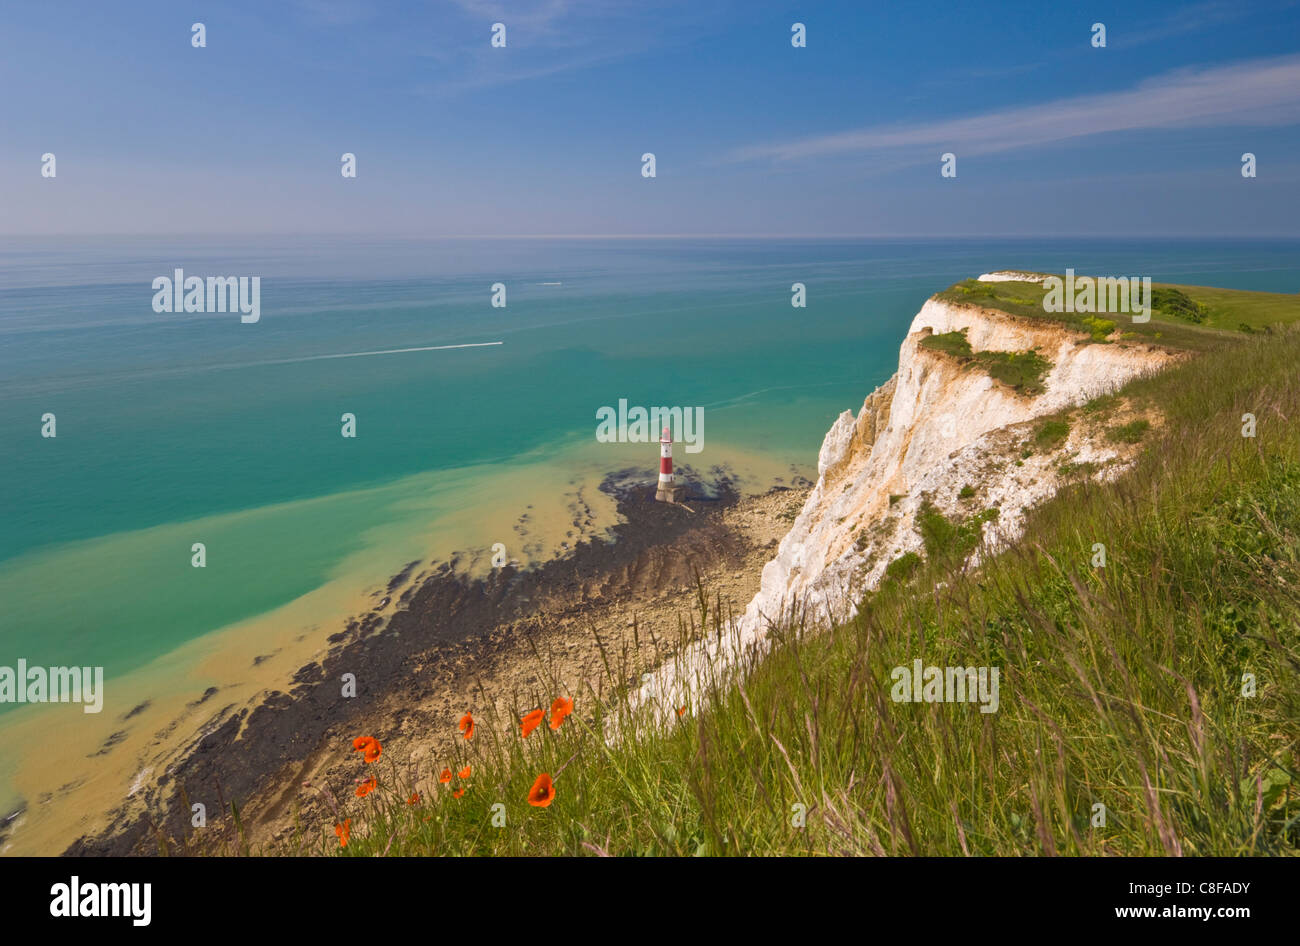 Beachy Head lighthouse, white chalk cliffs, poppies and English Channel, East Sussex, England, United Kingdom - Stock Image